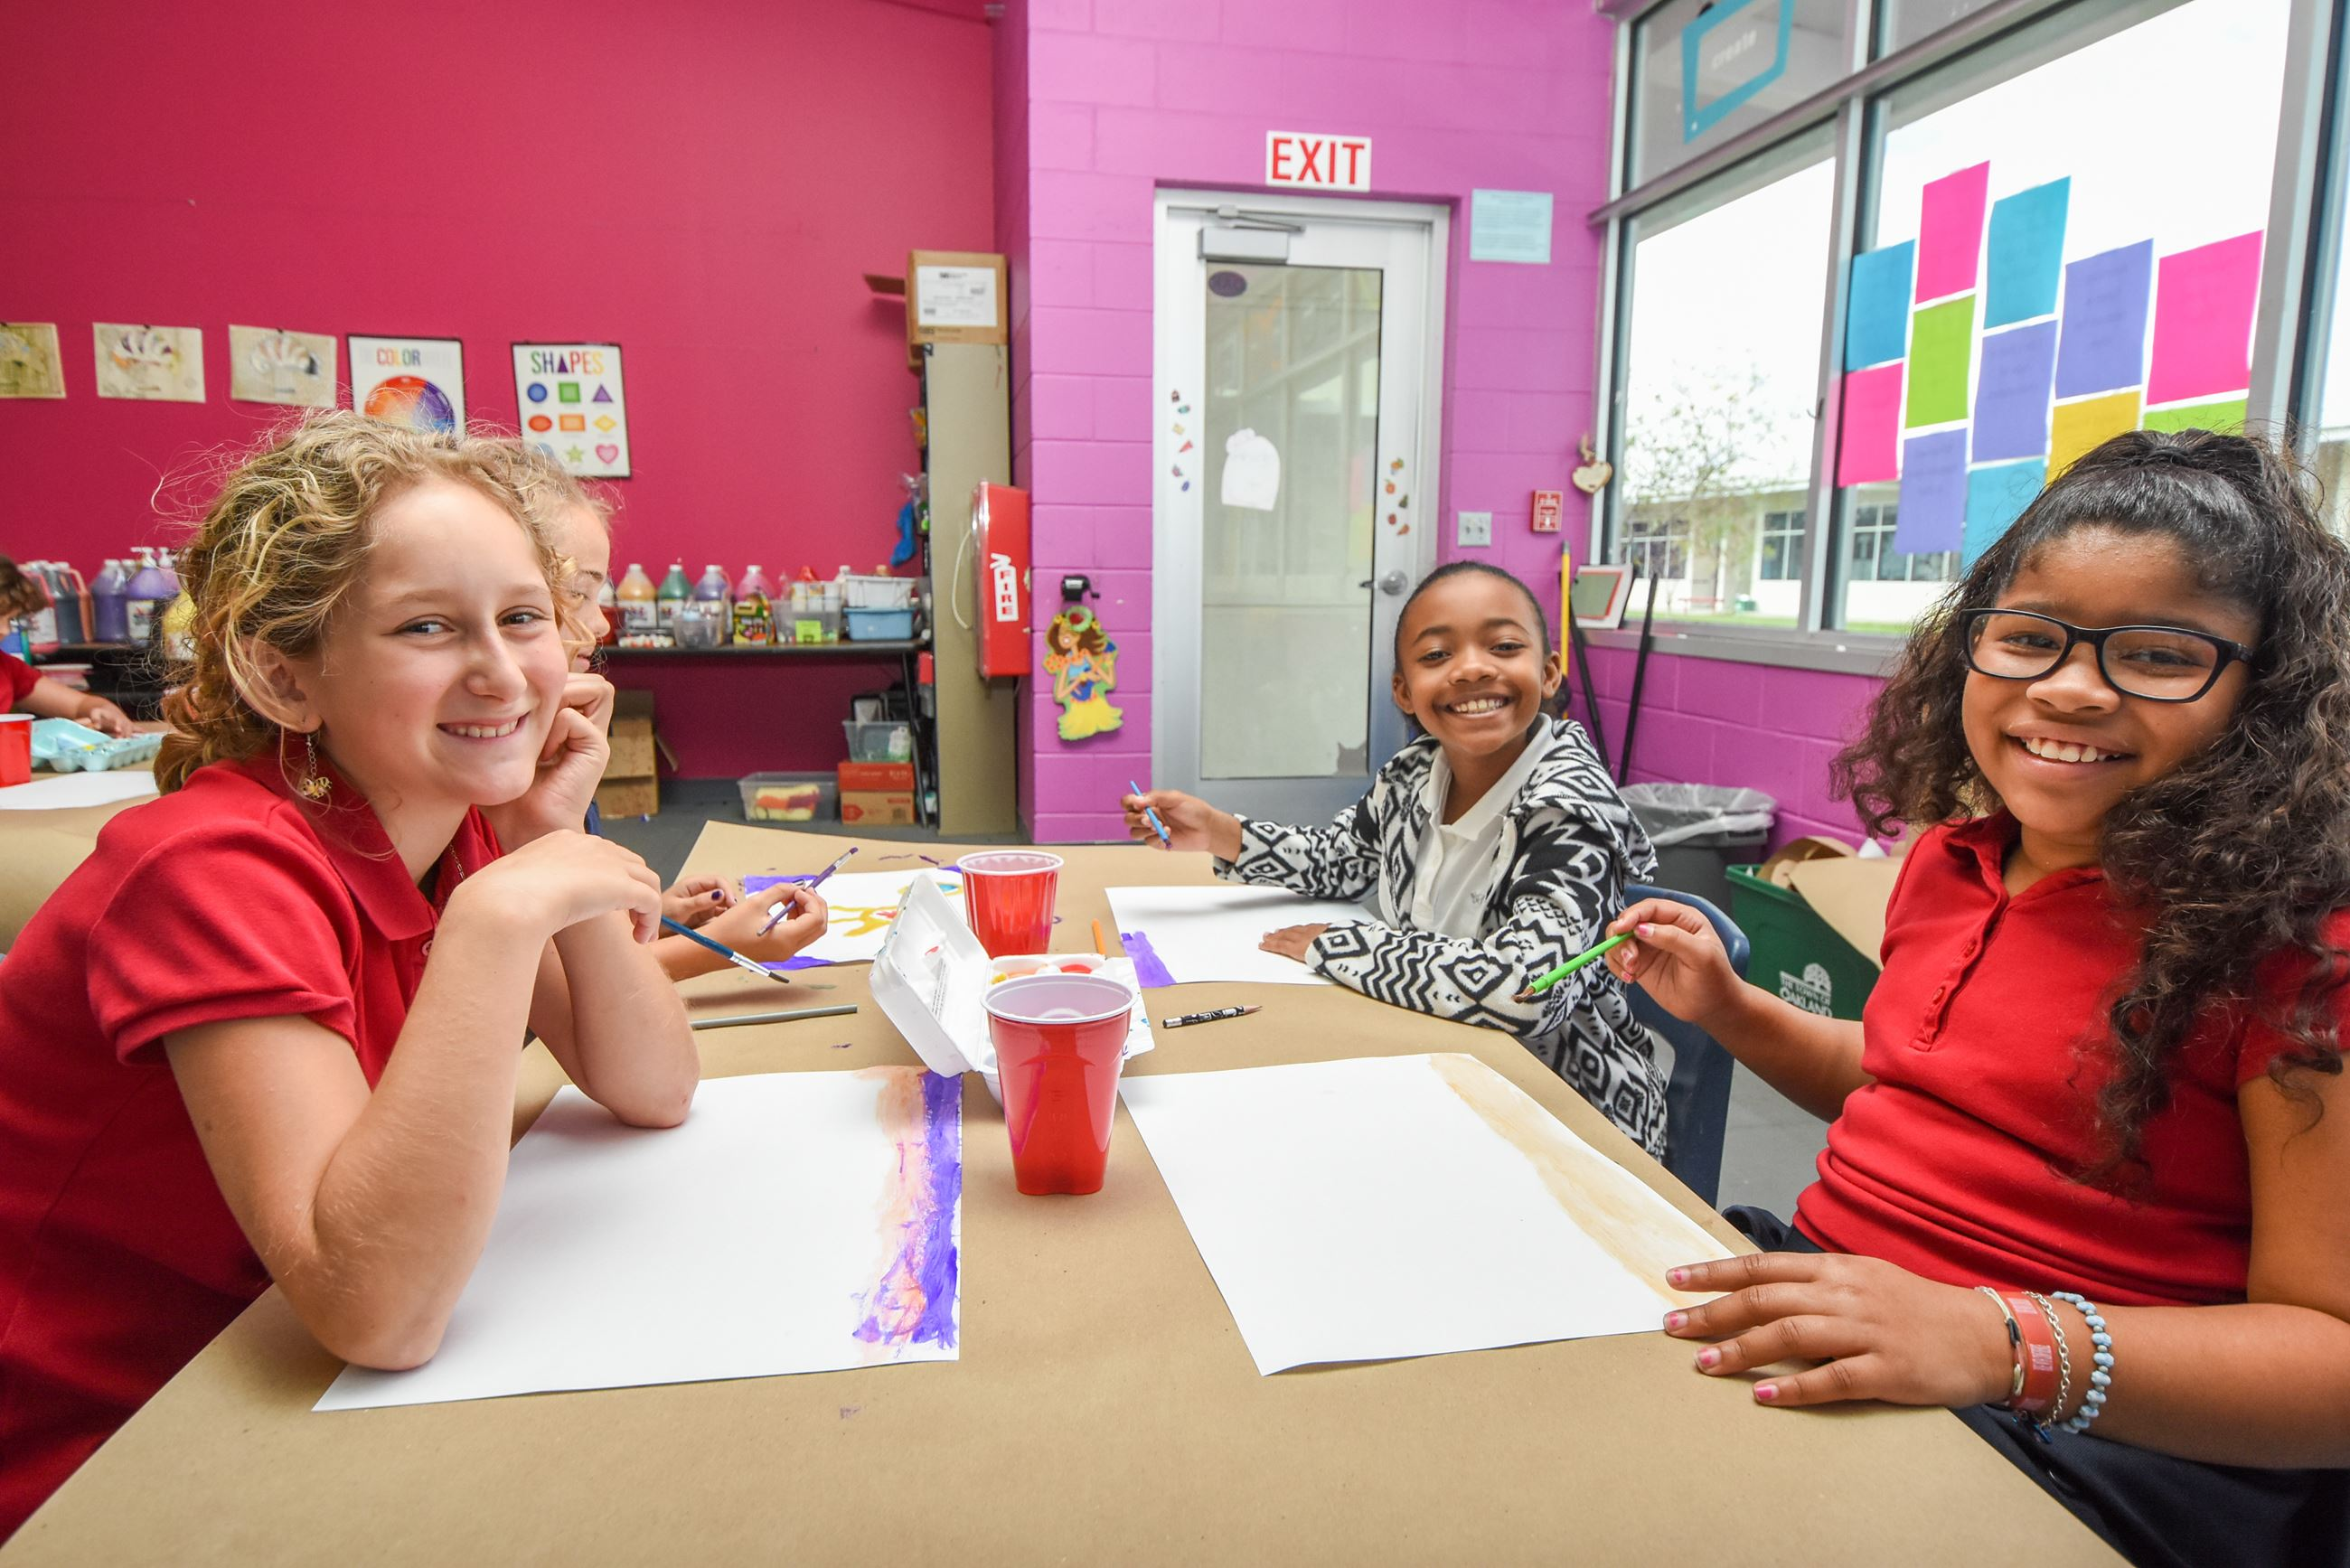 A group of girls painting in the Art classroom.